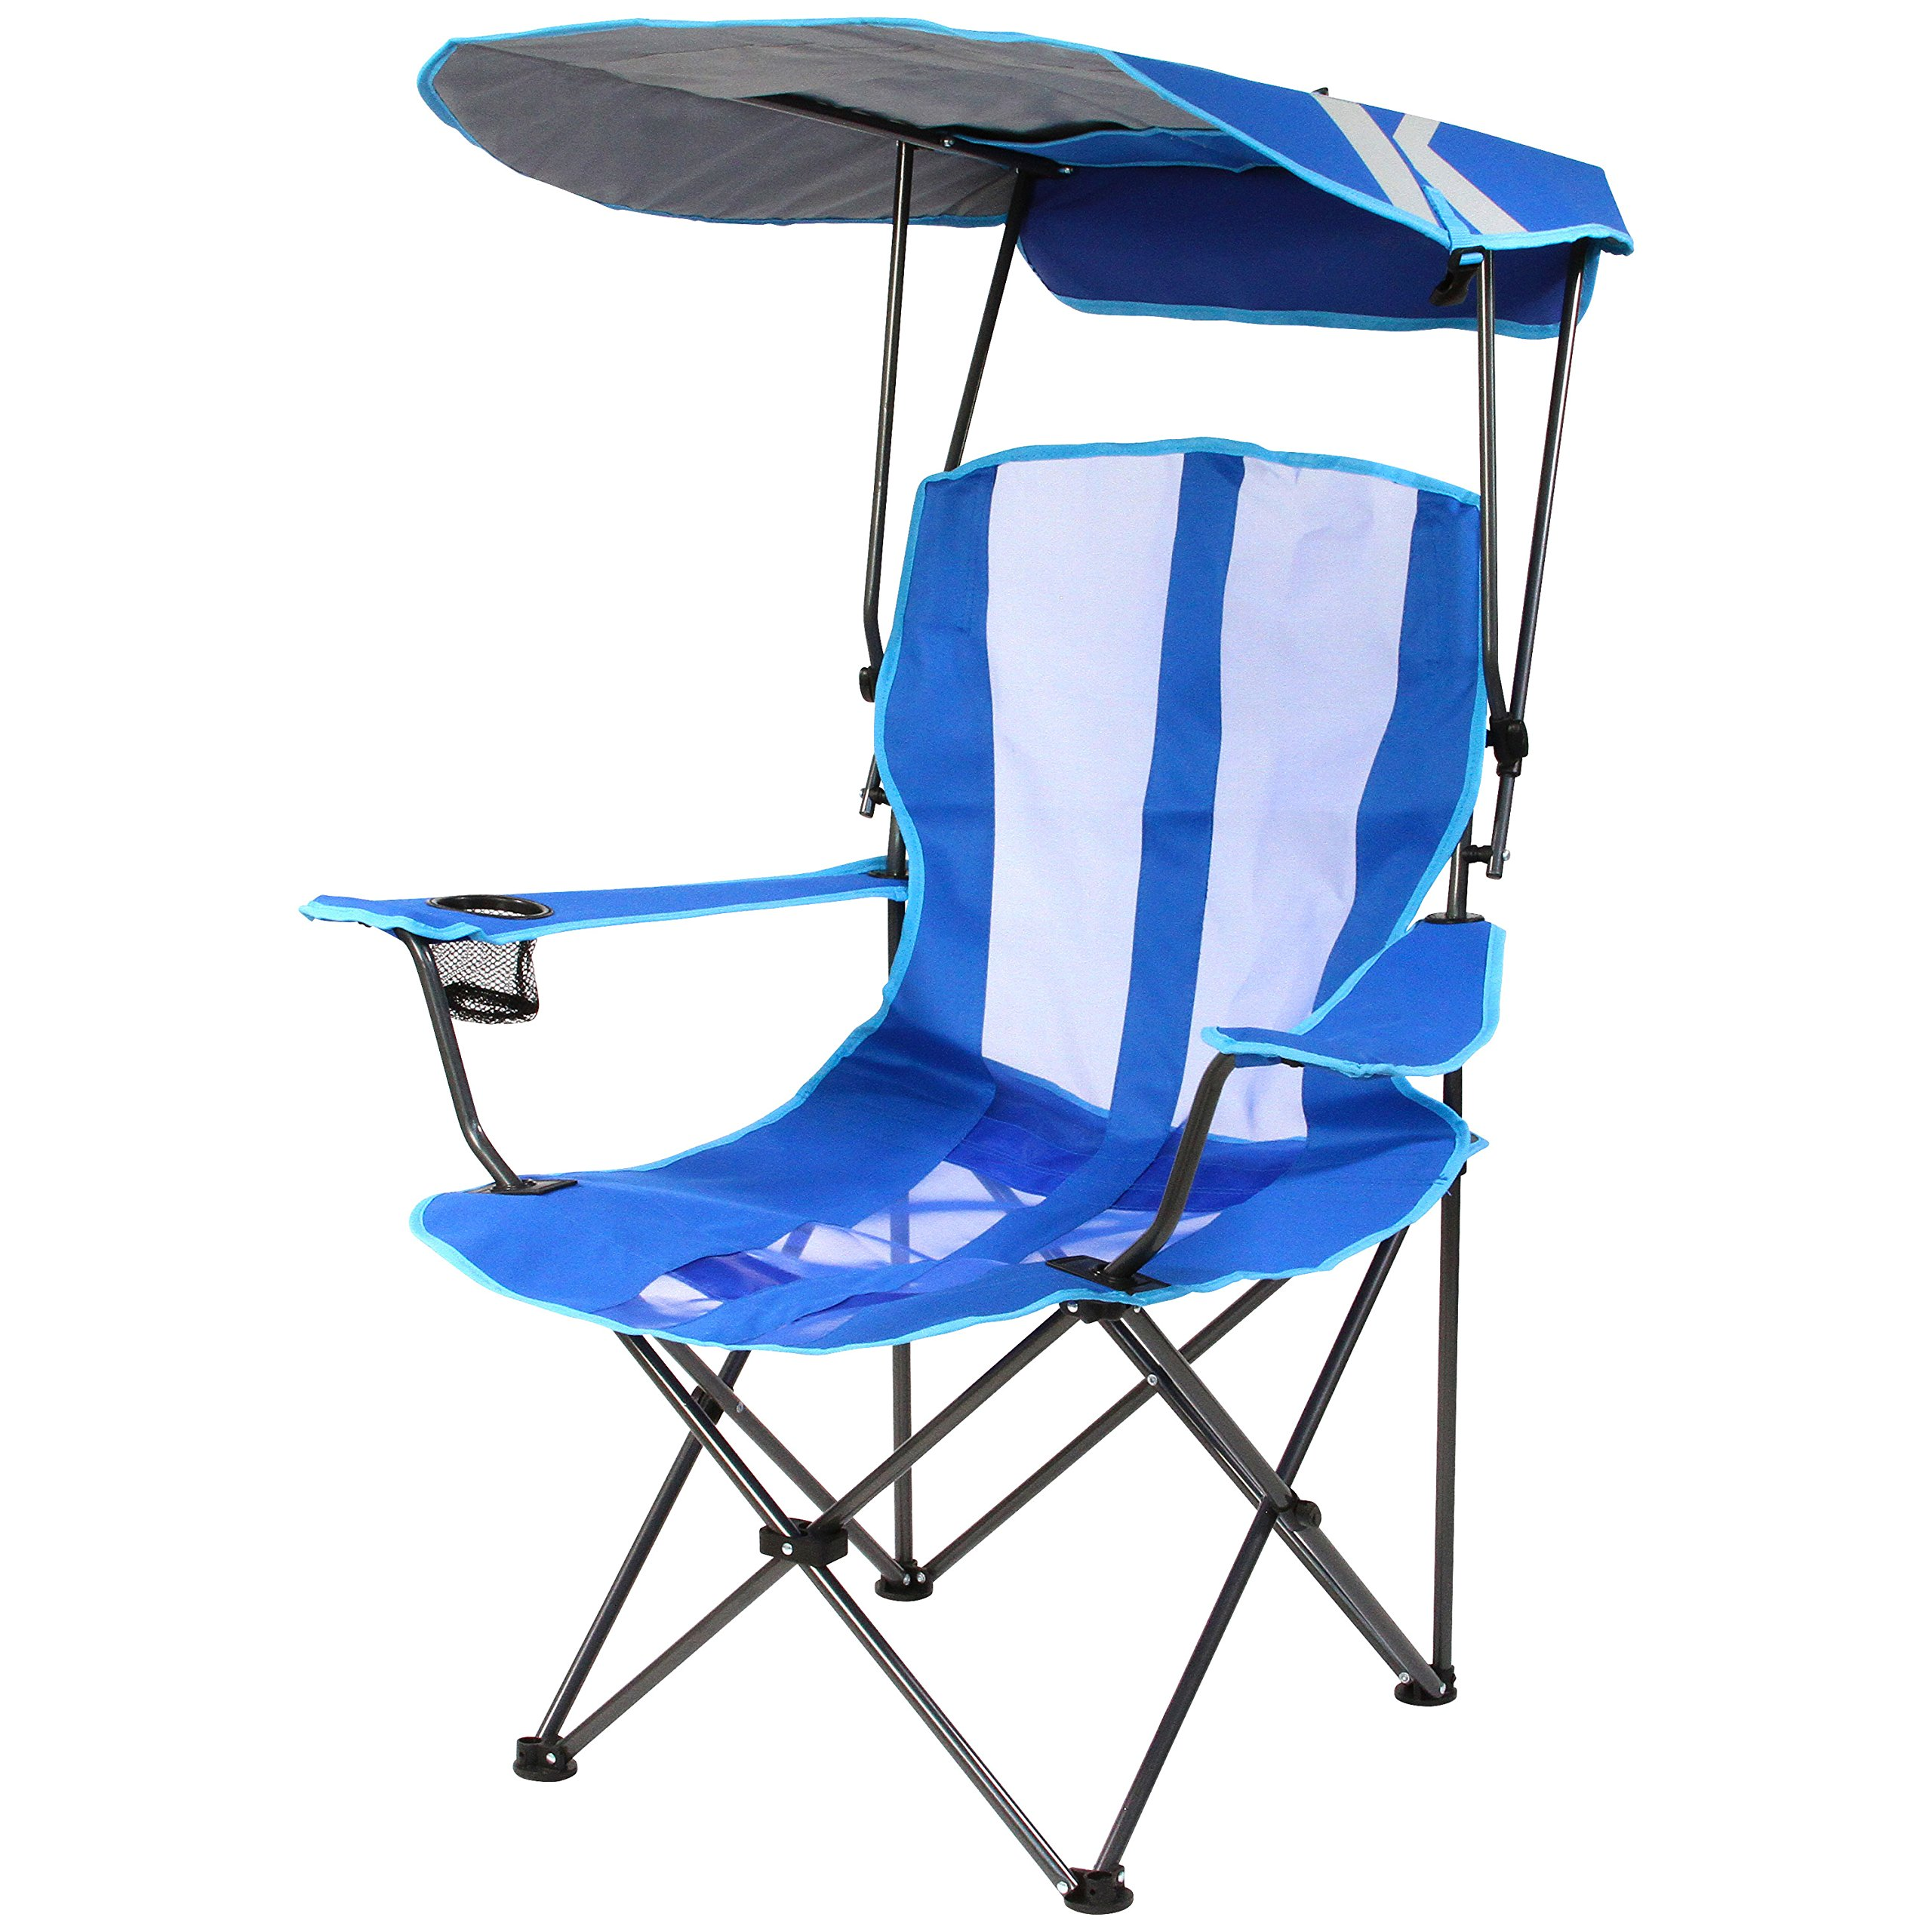 Kelsyus Original Canopy Chair - Foldable Chair for Camping, Tailgates, and Outdoor Events - Royal Blue